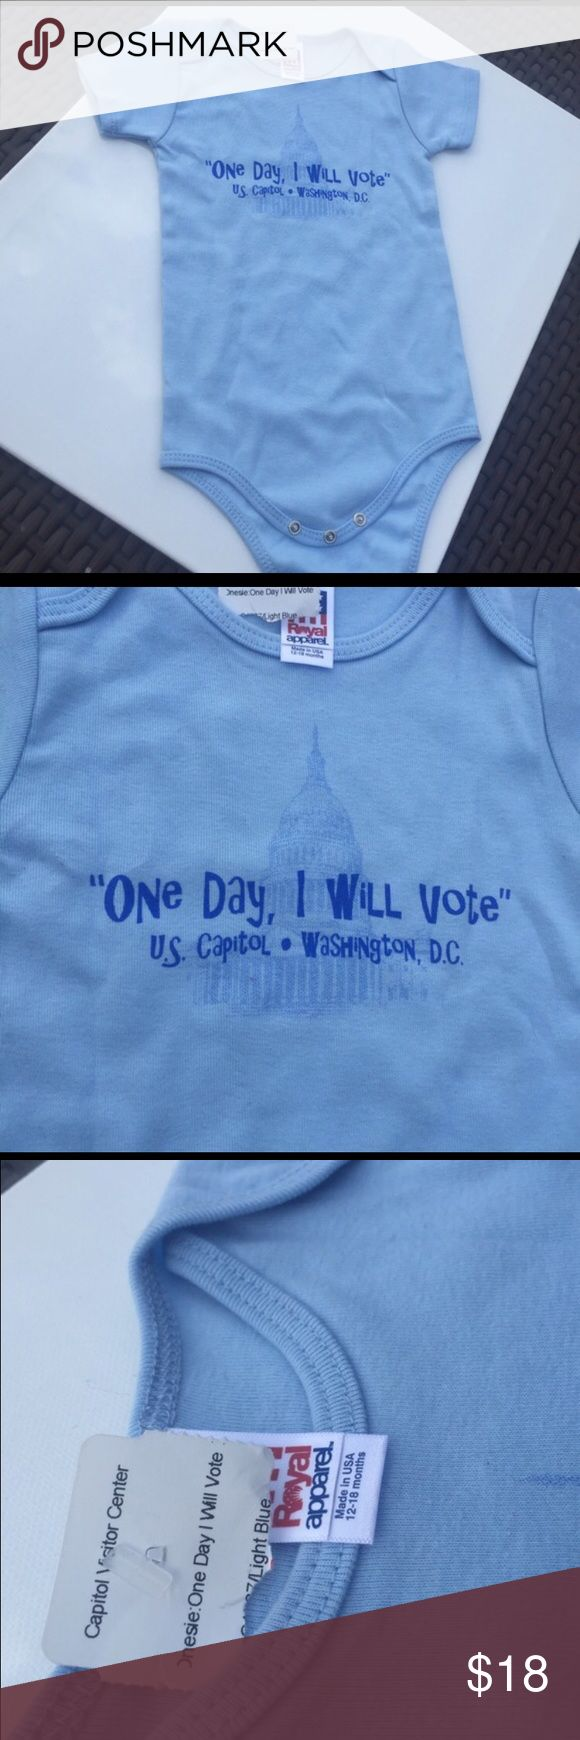 "New! Baby Voter Onesie ""One day, I will vote!""  It's from the Capitol Center in D.C. Election ready!!! One Pieces Bodysuits"